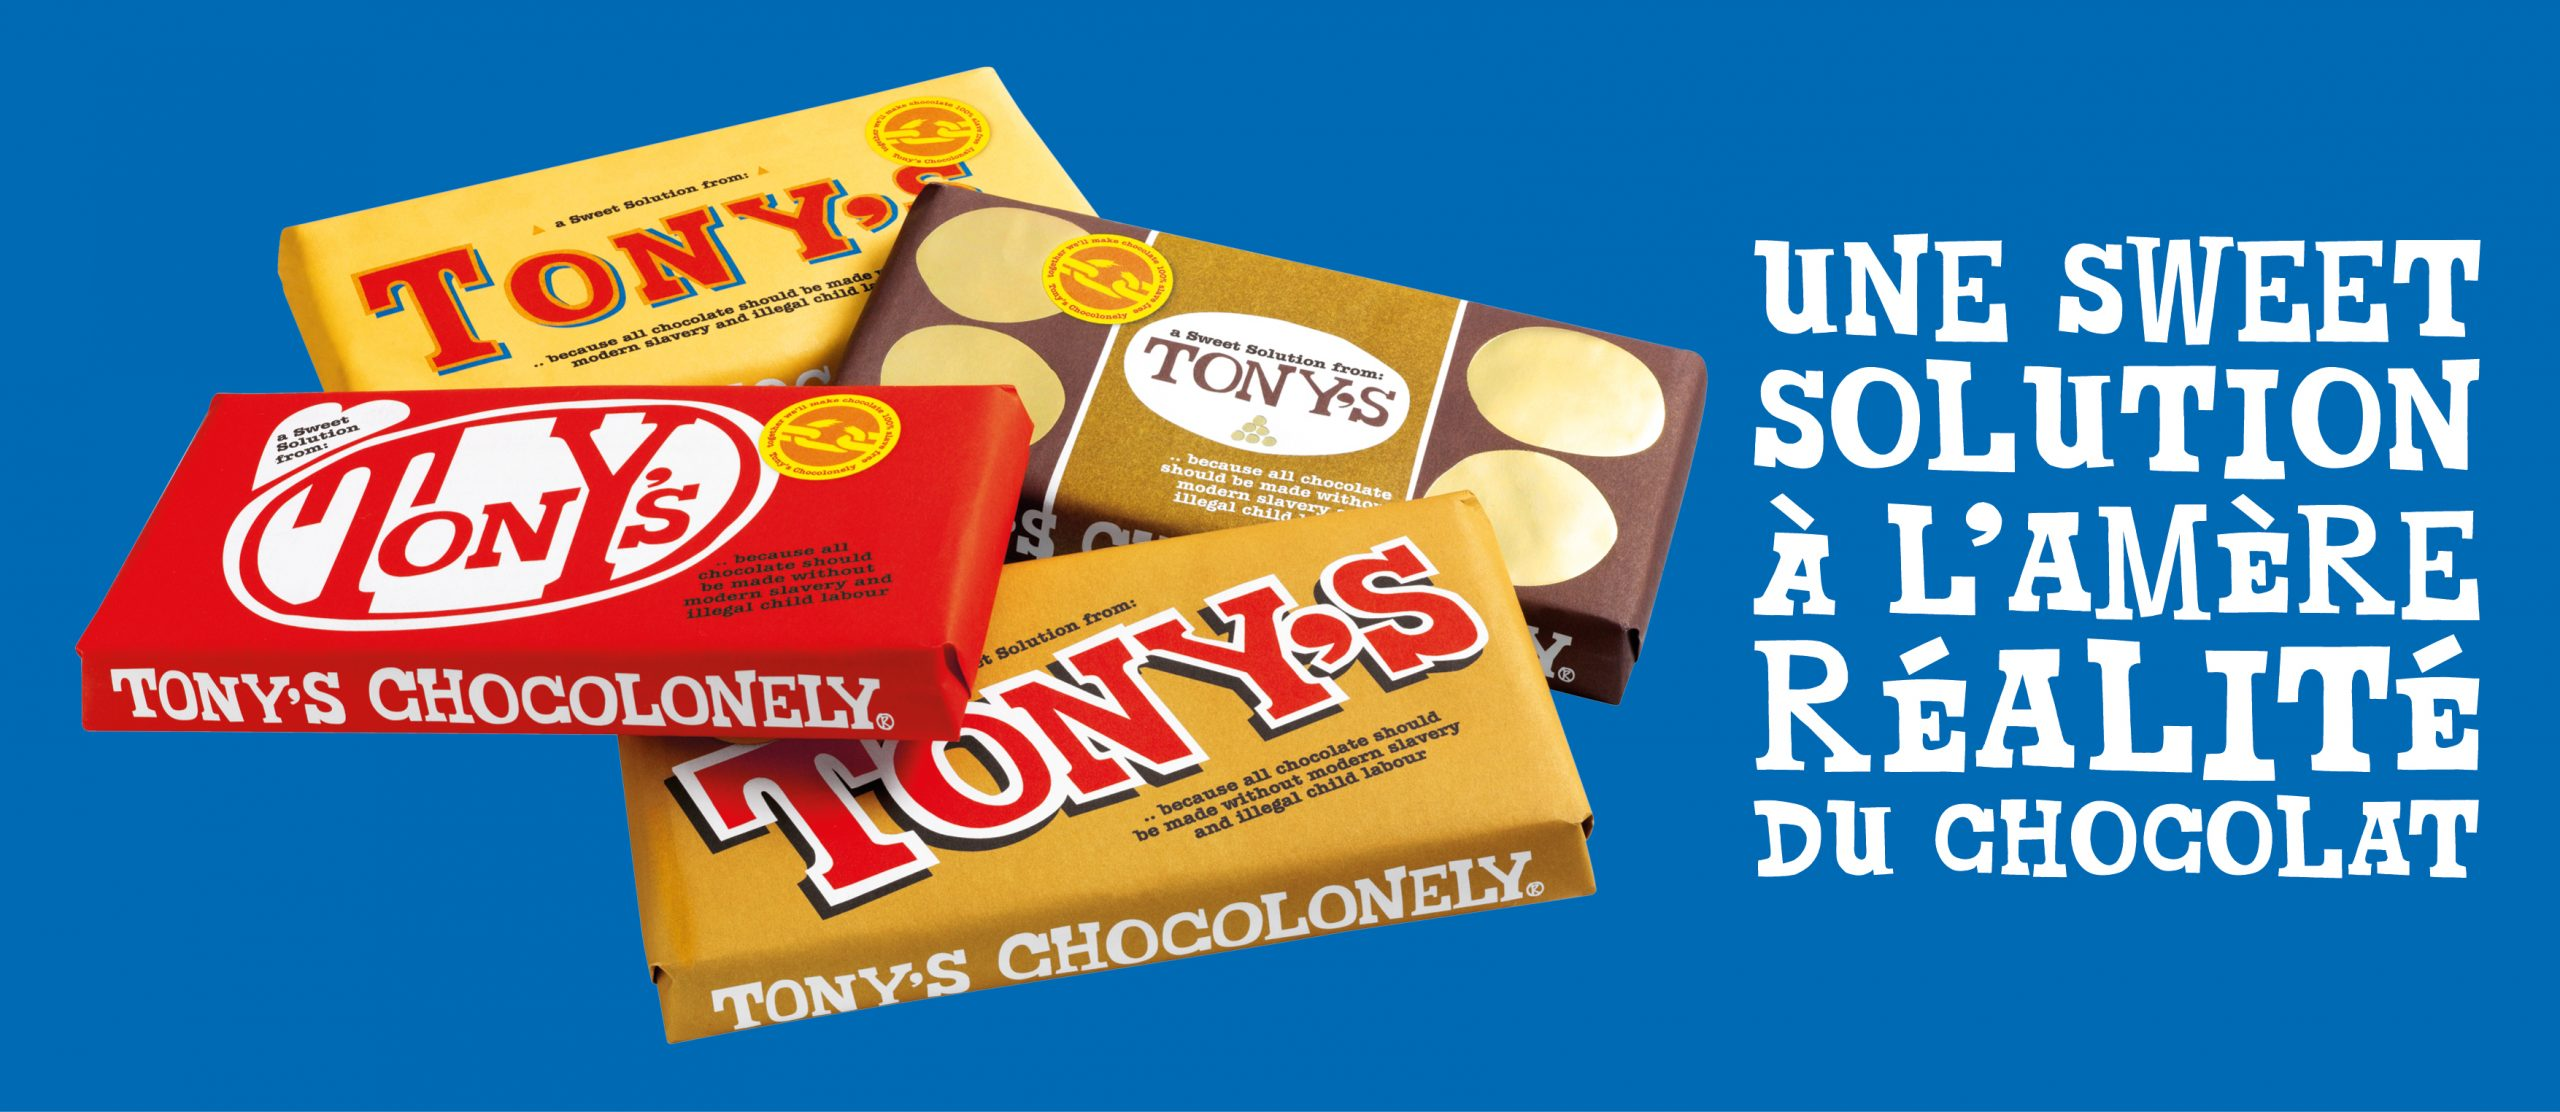 TonysChocolonely SweetSolution copie scaled - Une « Sweet Solution » au travail illégal dans l'industrie du chocolat